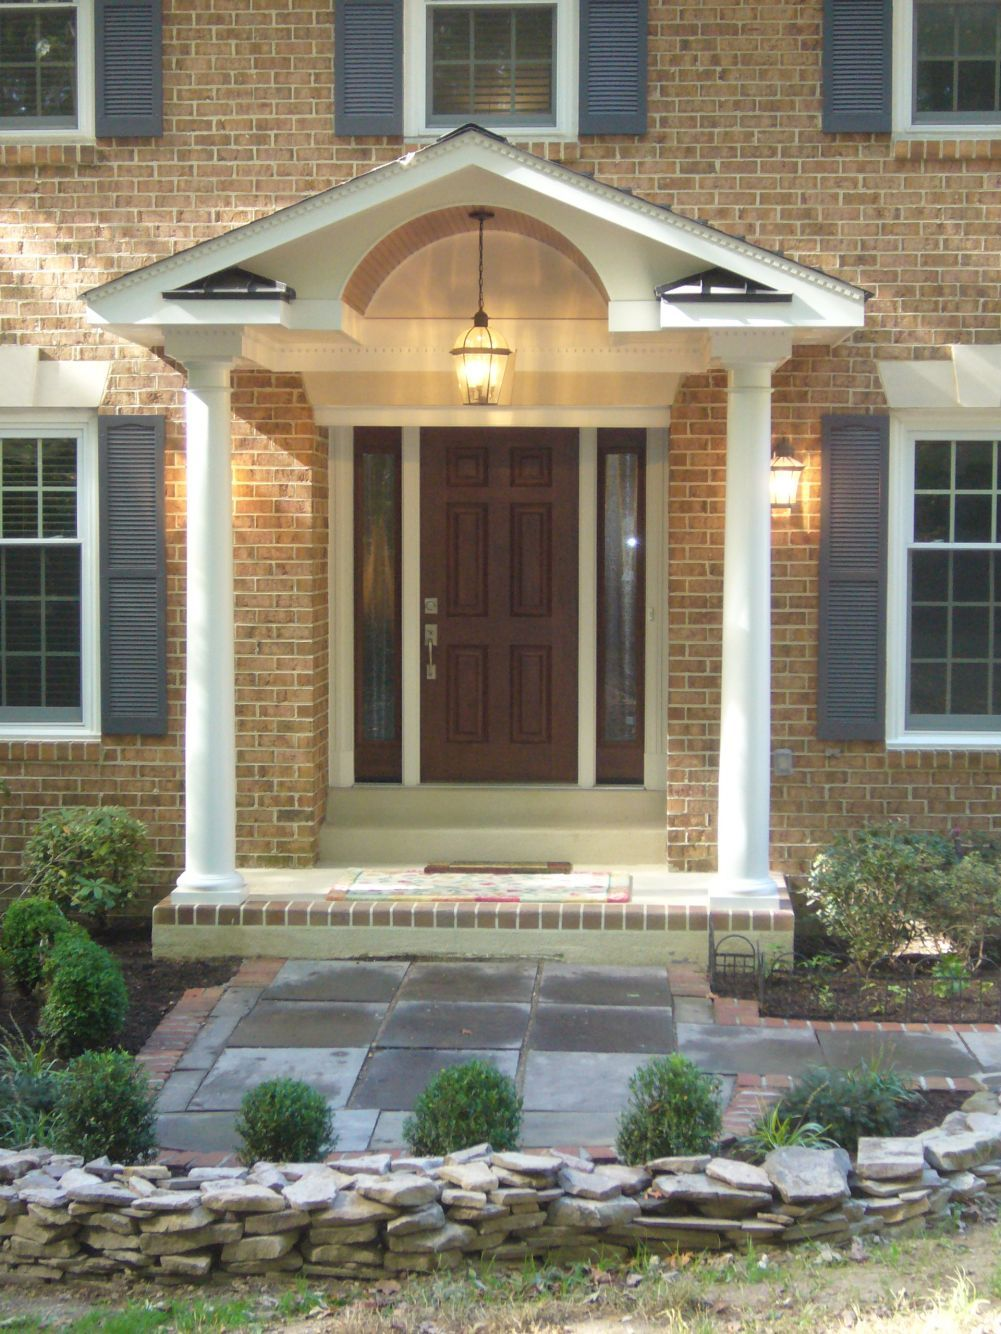 Front Porch Design Ideas classic southern front porch Find This Pin And More On Remodeling Ideas Exterior Interior Lovely Front Porch Design